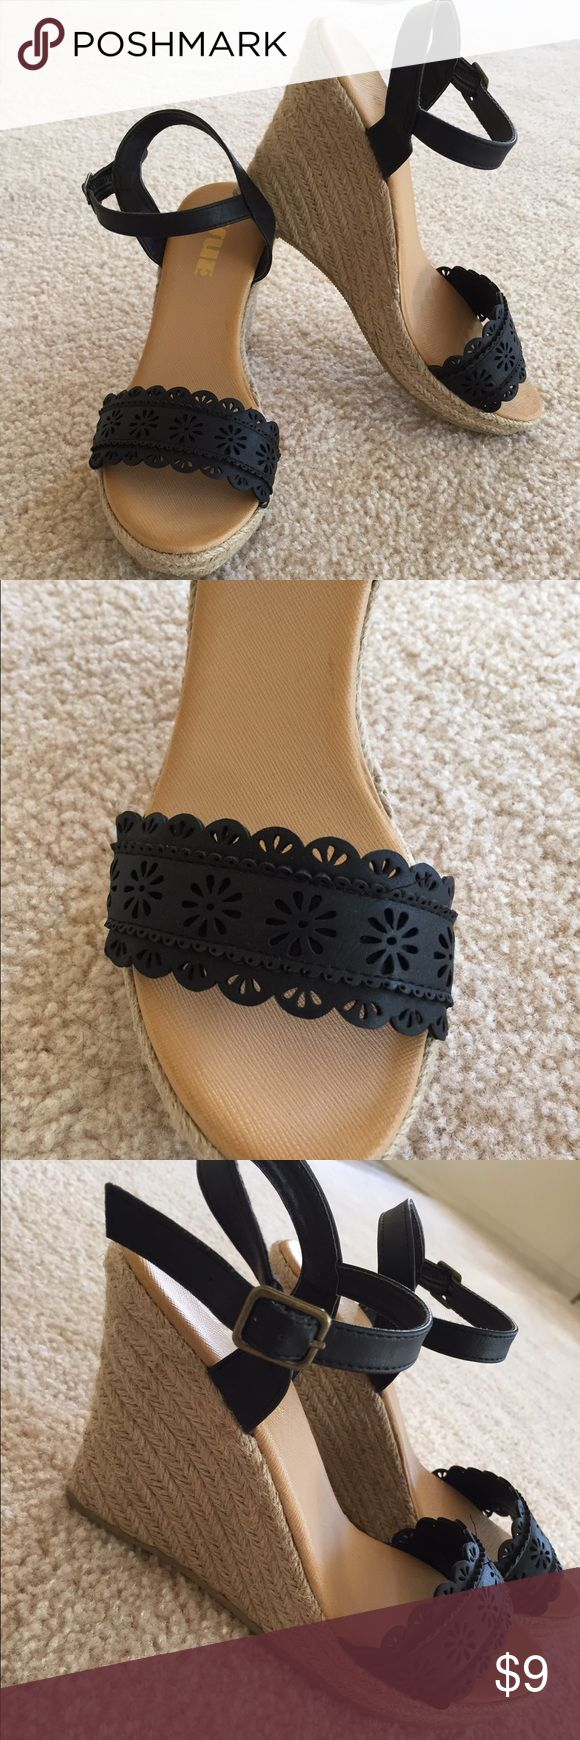 Faux leather espadrilles Very cute pair of faux leather wedge espadrilles. Never worn. Plastic sole. Purchased at Gordmans. Shoes Espadrilles